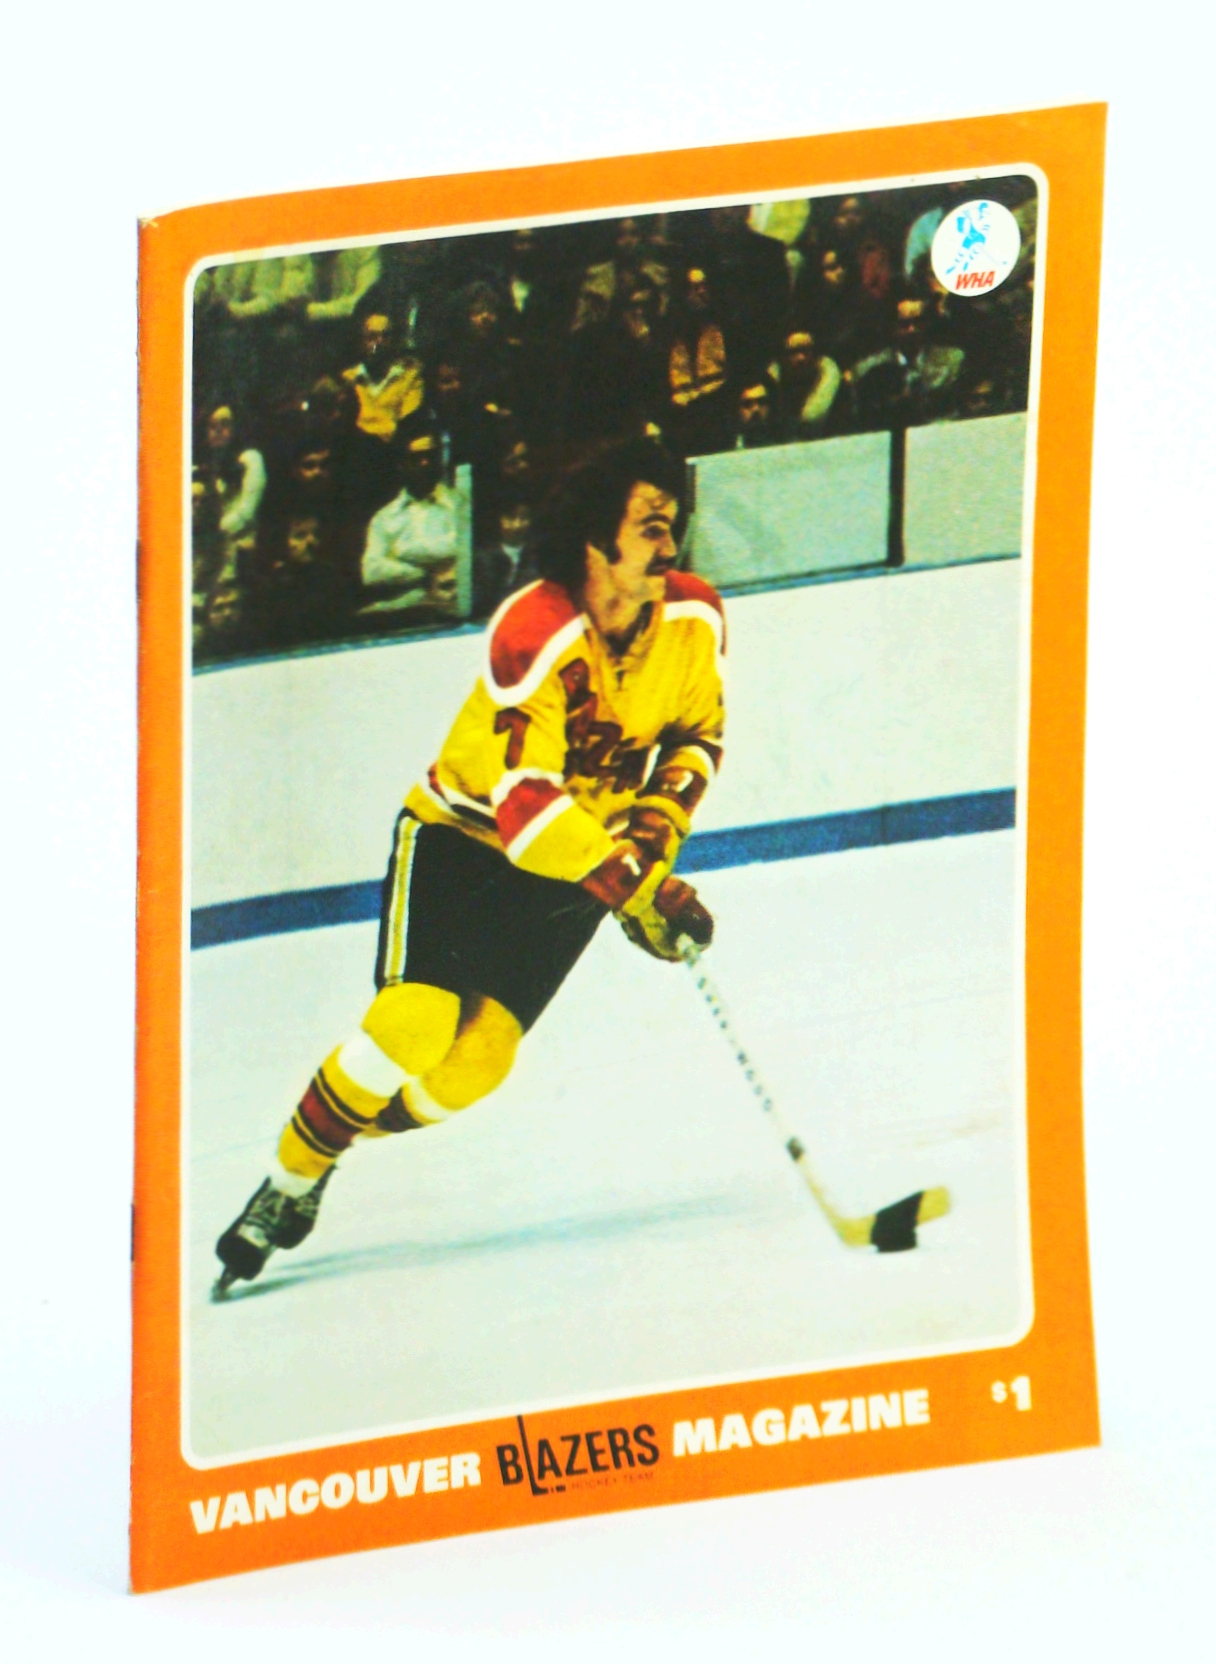 Image for Vancouver Blazers Magazine, Volume II, Issue No. 30, March 5, 1975 : Cover Photo of Ron Chipperfield